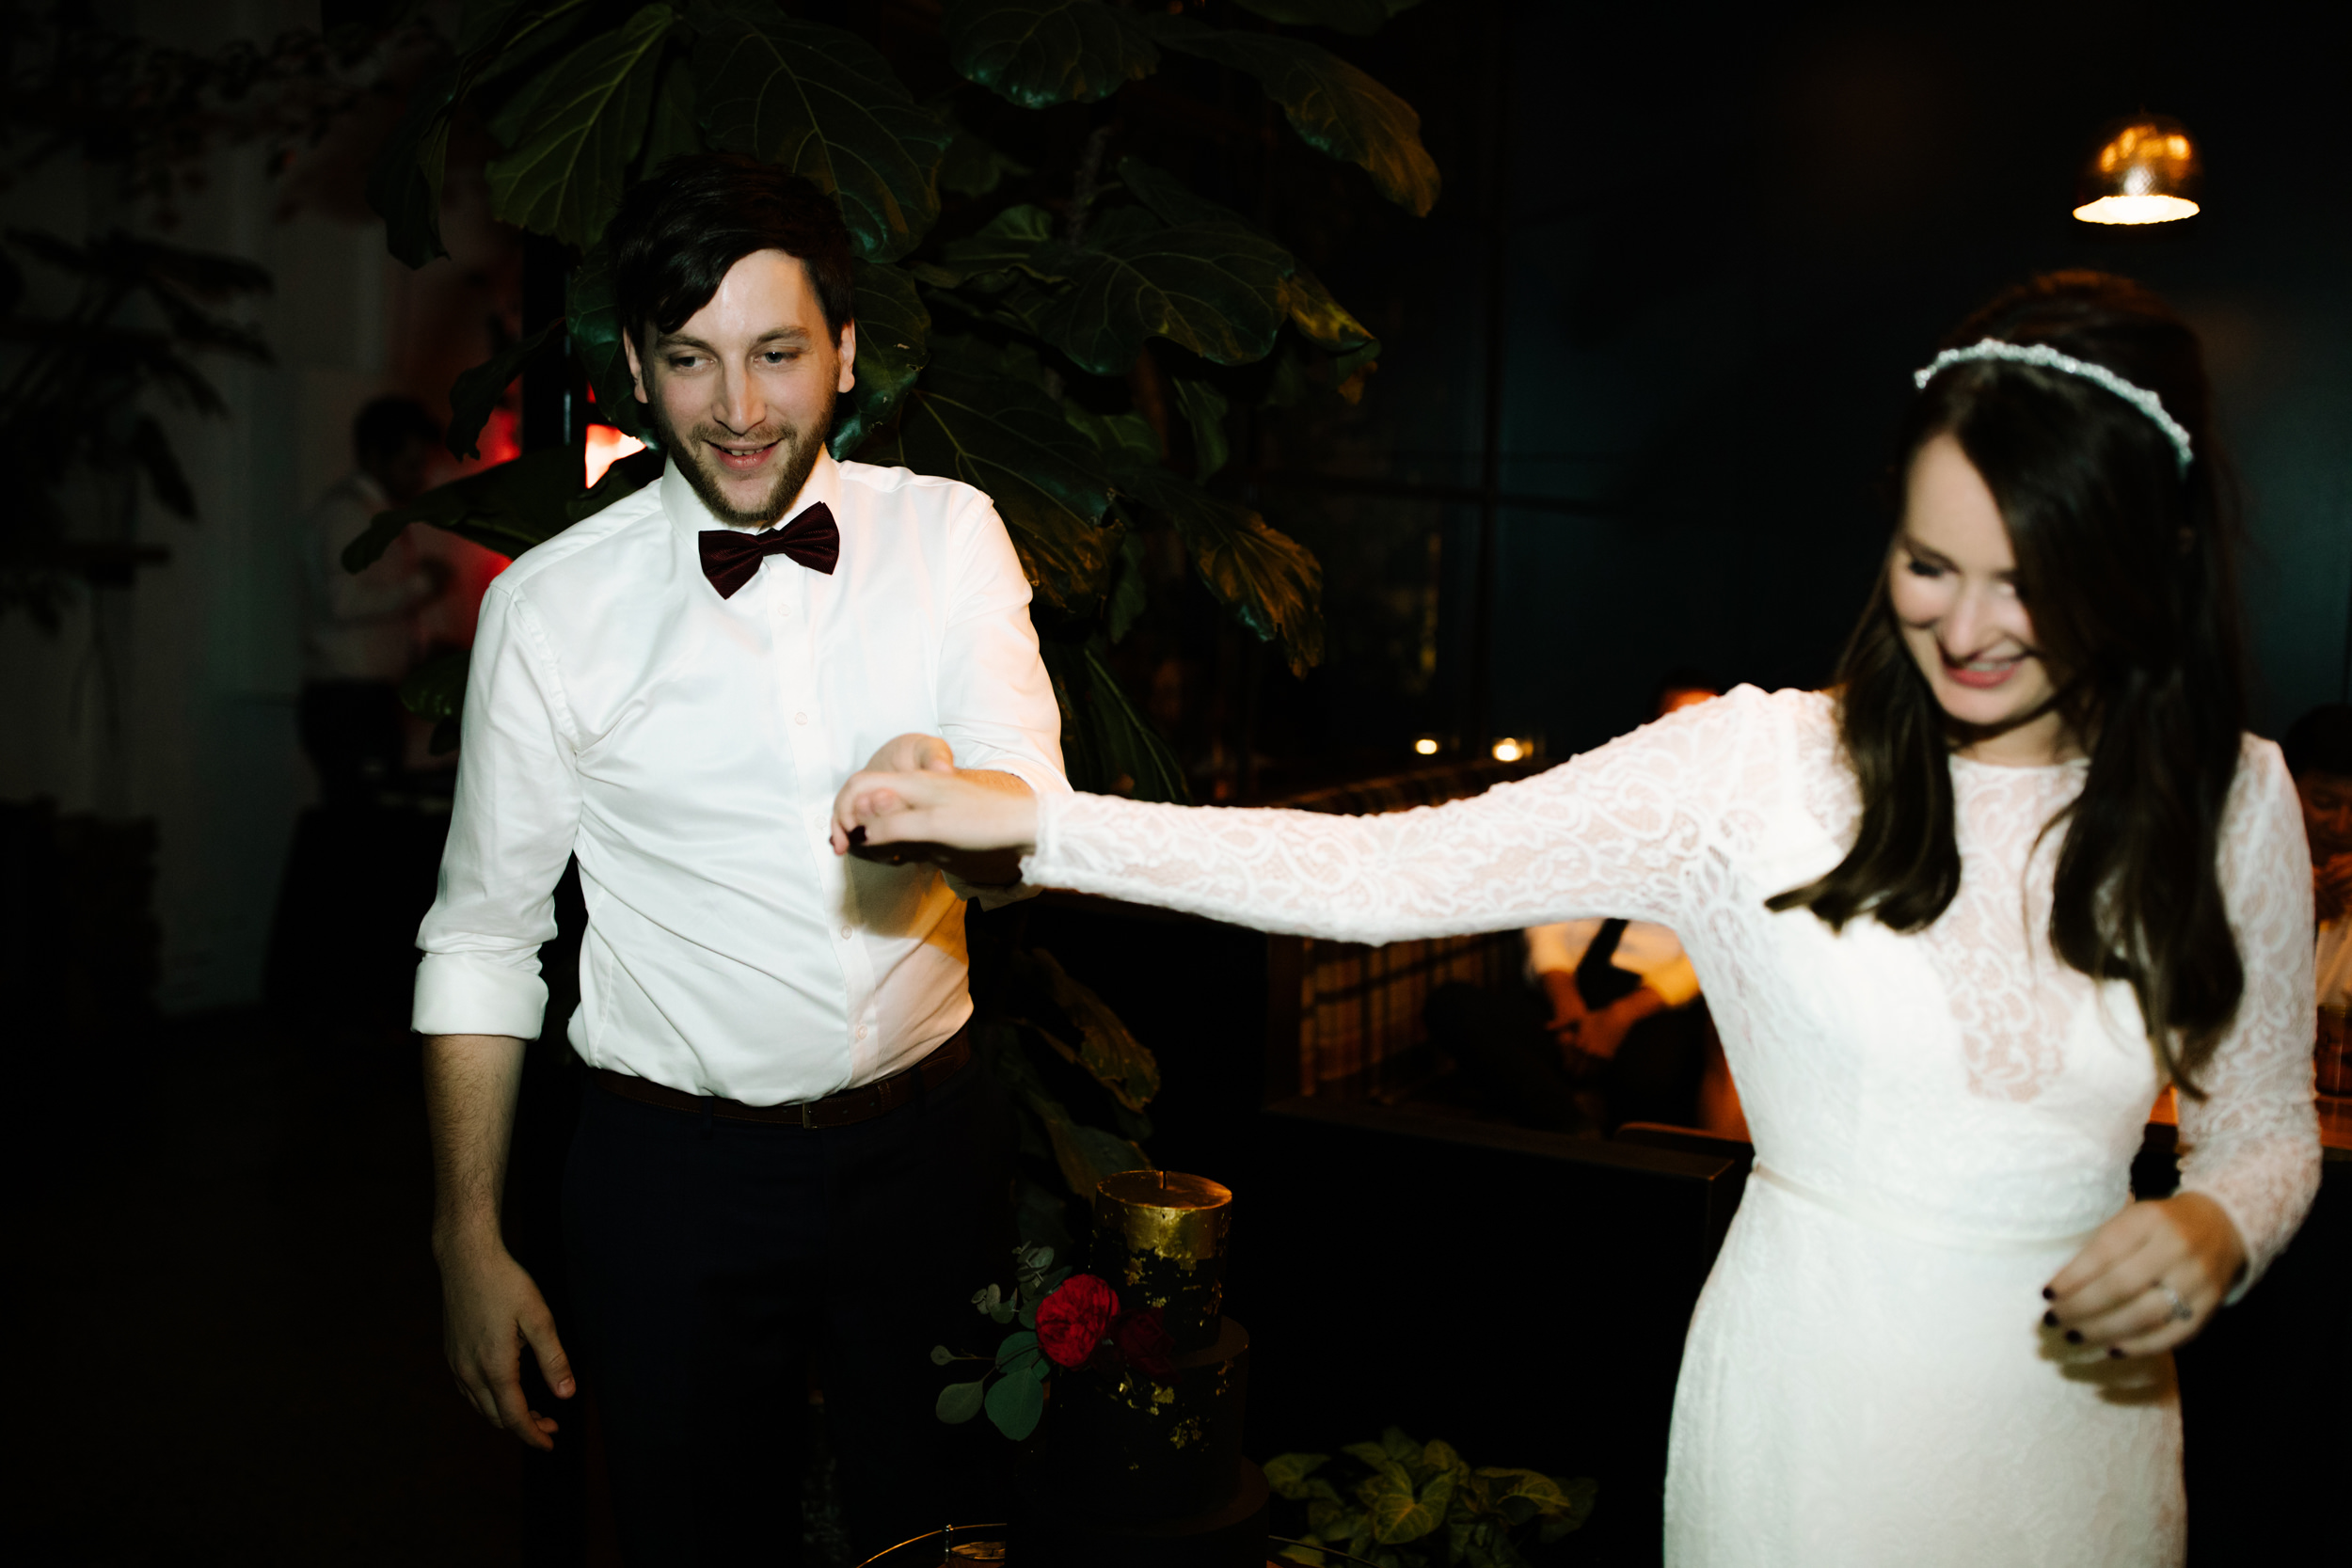 I_Got_You_Babe_Weddings_Emily_Matt_Rupert_Glasshaus_Melbourne0220.JPG